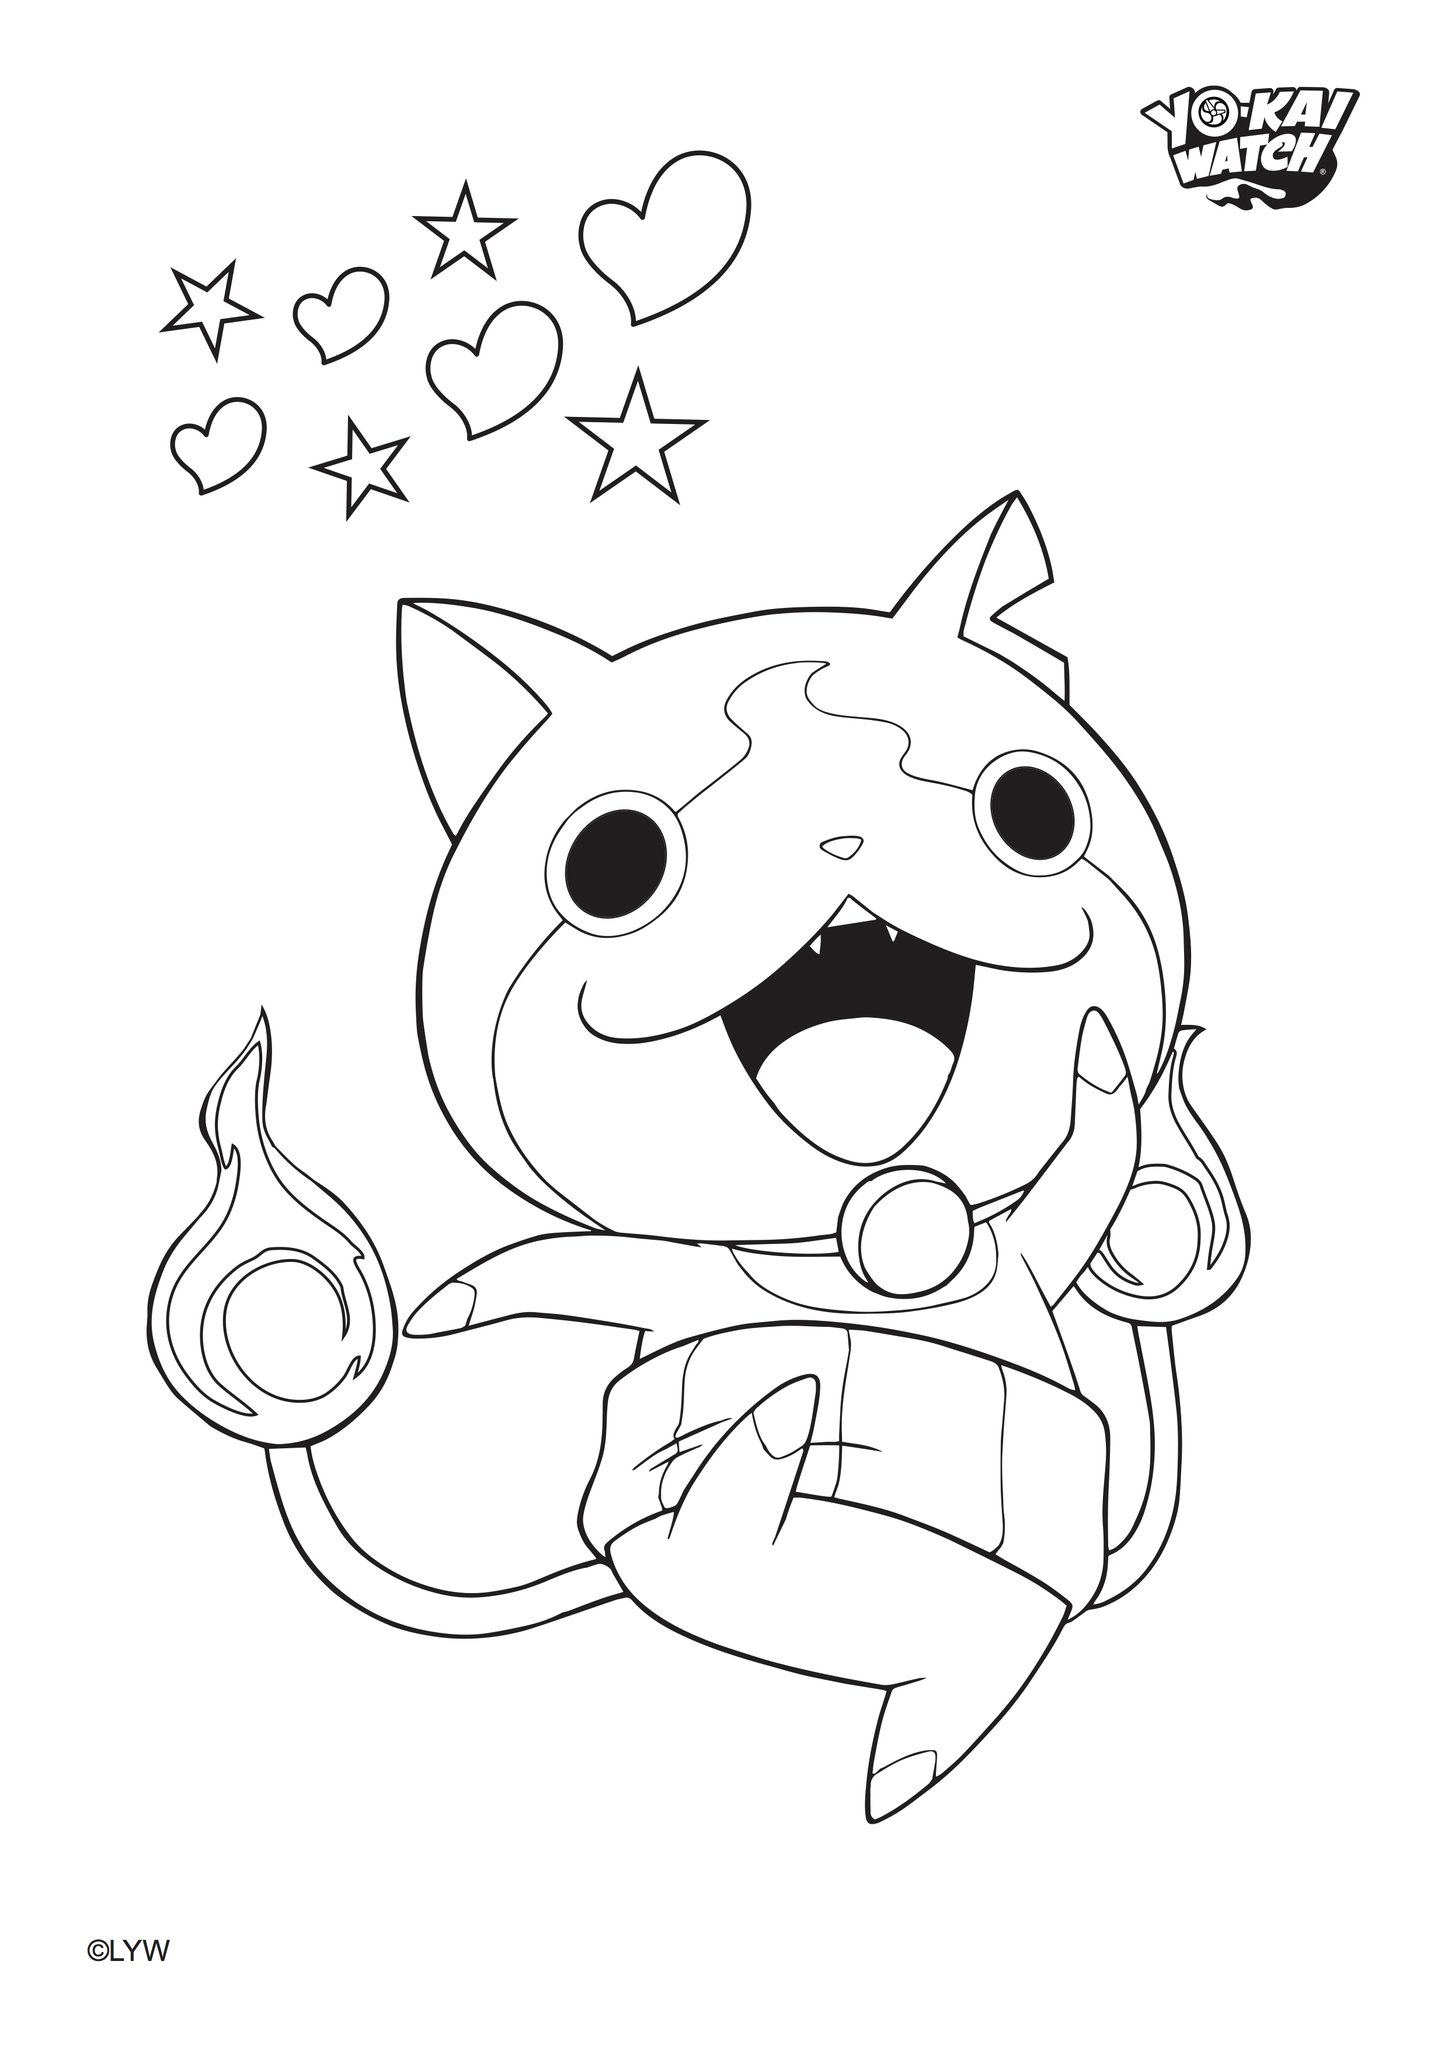 Yo Kai Watch Coloring Pages Gallery | Free Coloring Sheets